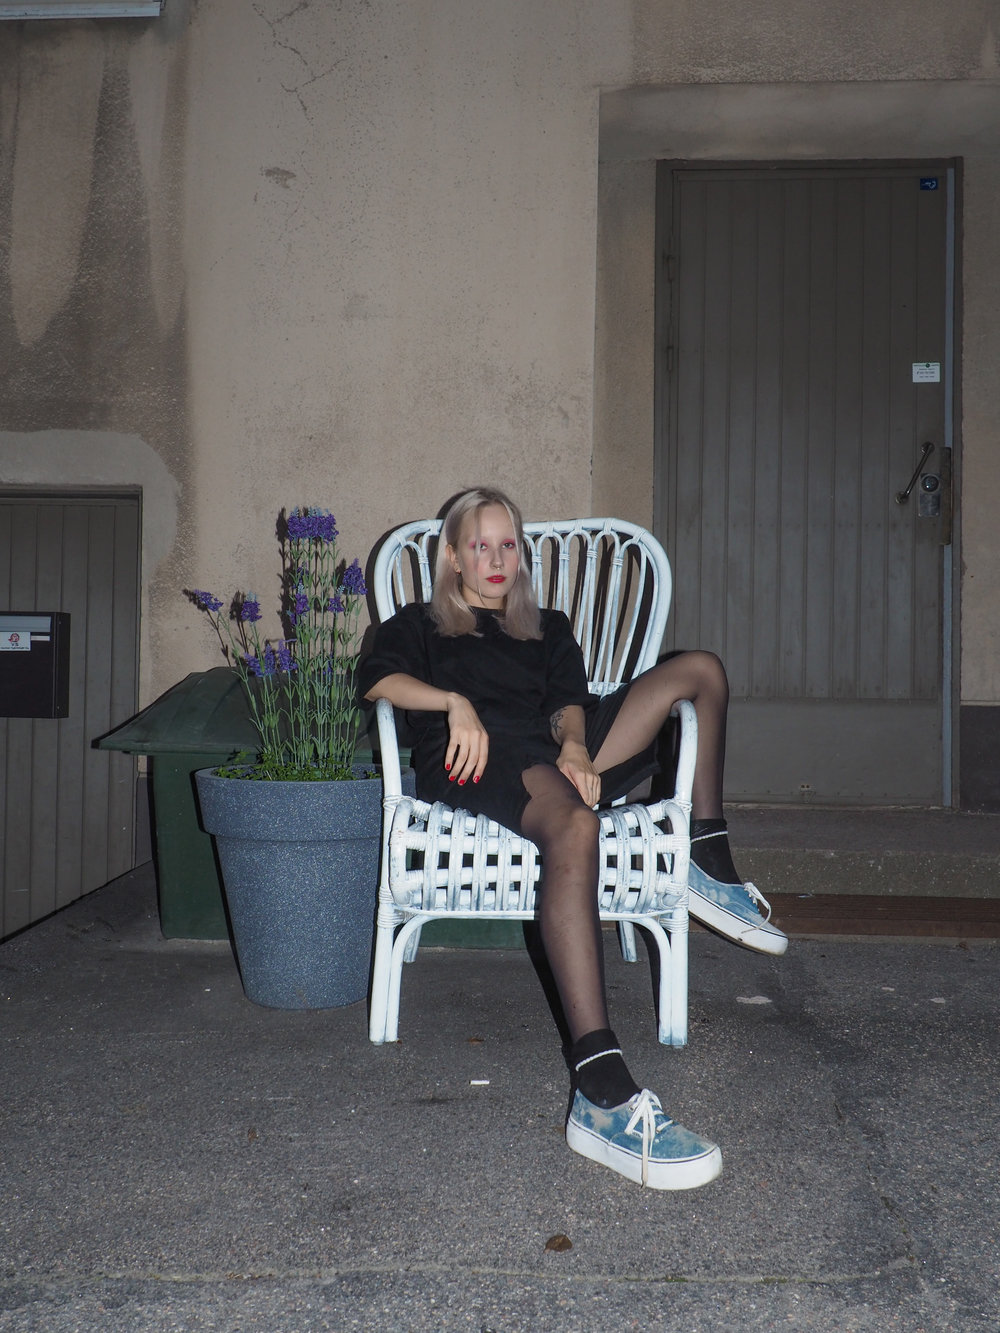 Vaffa - A new grim streetwear label emerges from rural Finland